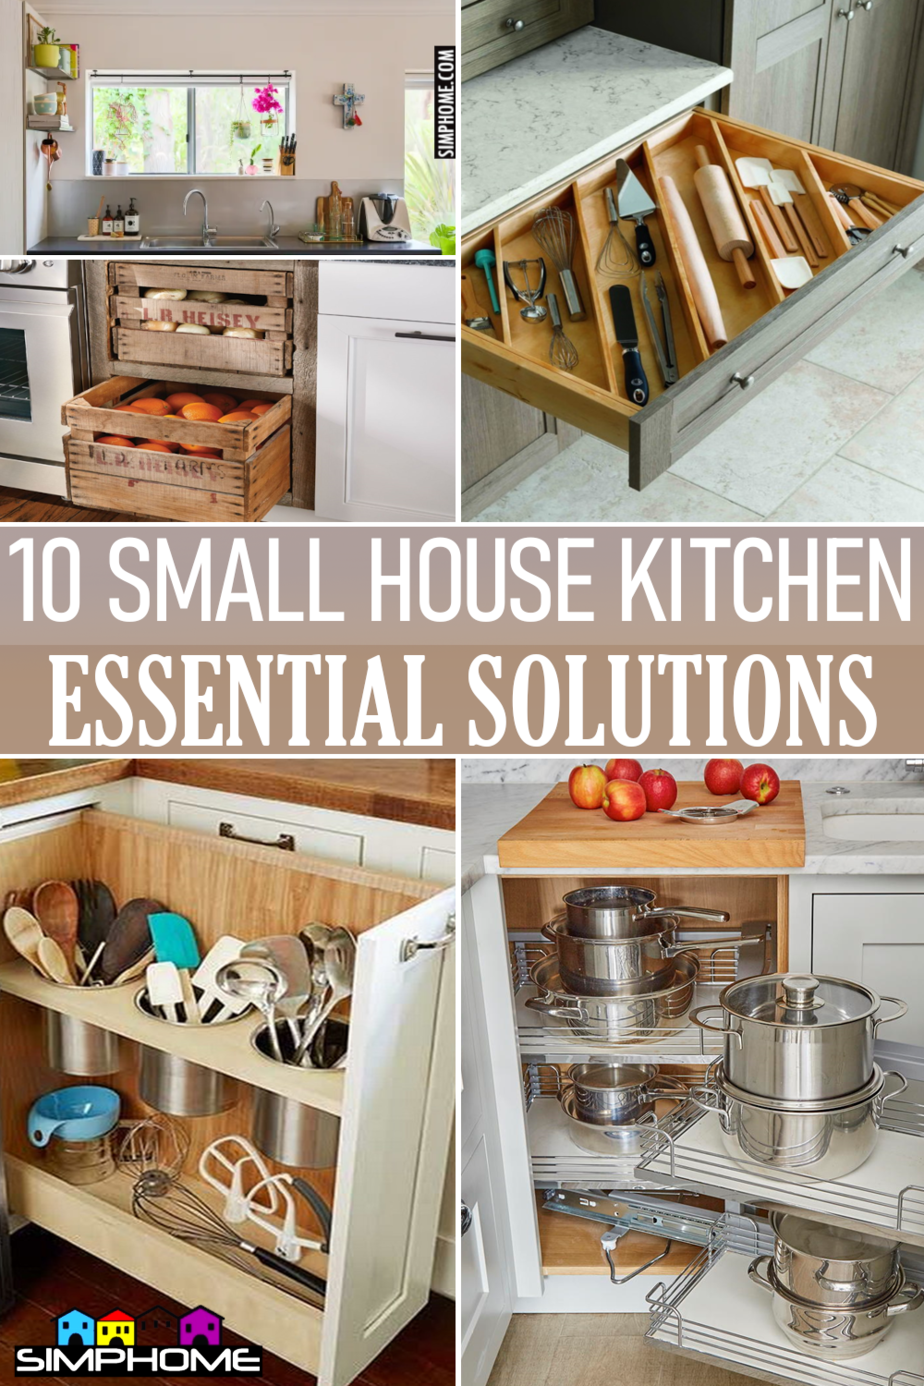 10 Small House Kitchen Essential Solutions via Simphome.comFeatured